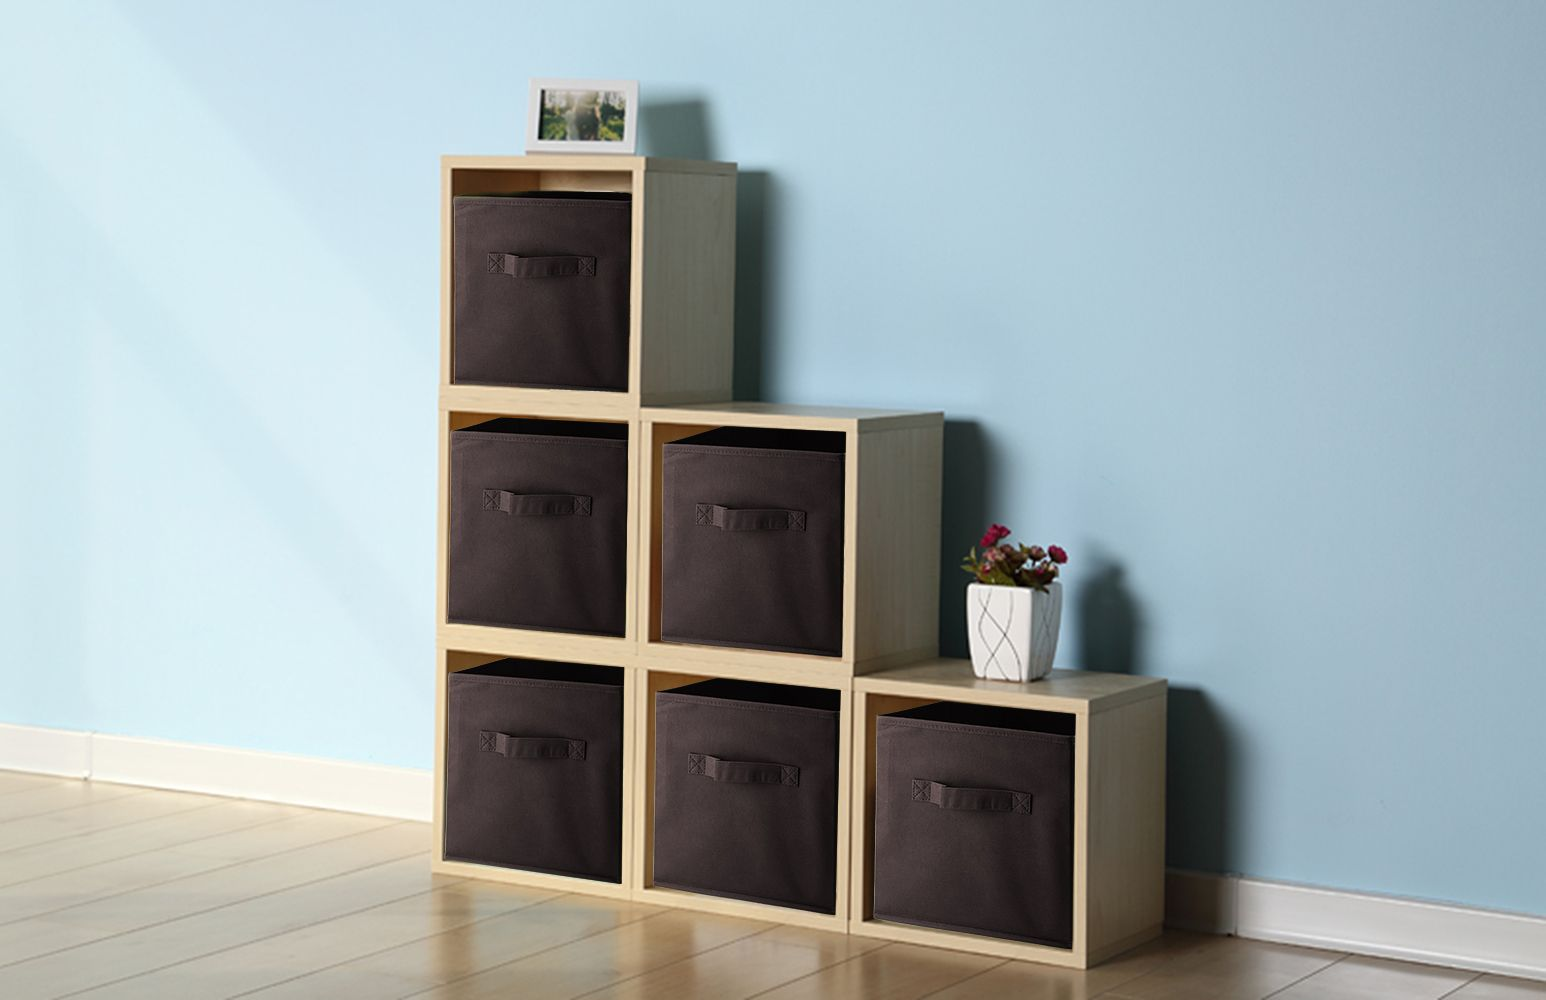 Cloth Storage Cubes Bins Bo Baskets Foldable Closet Drawer Home Organizer For Clothes Toys Shelf With Dual Strong Handles Set Of 6 Coffee